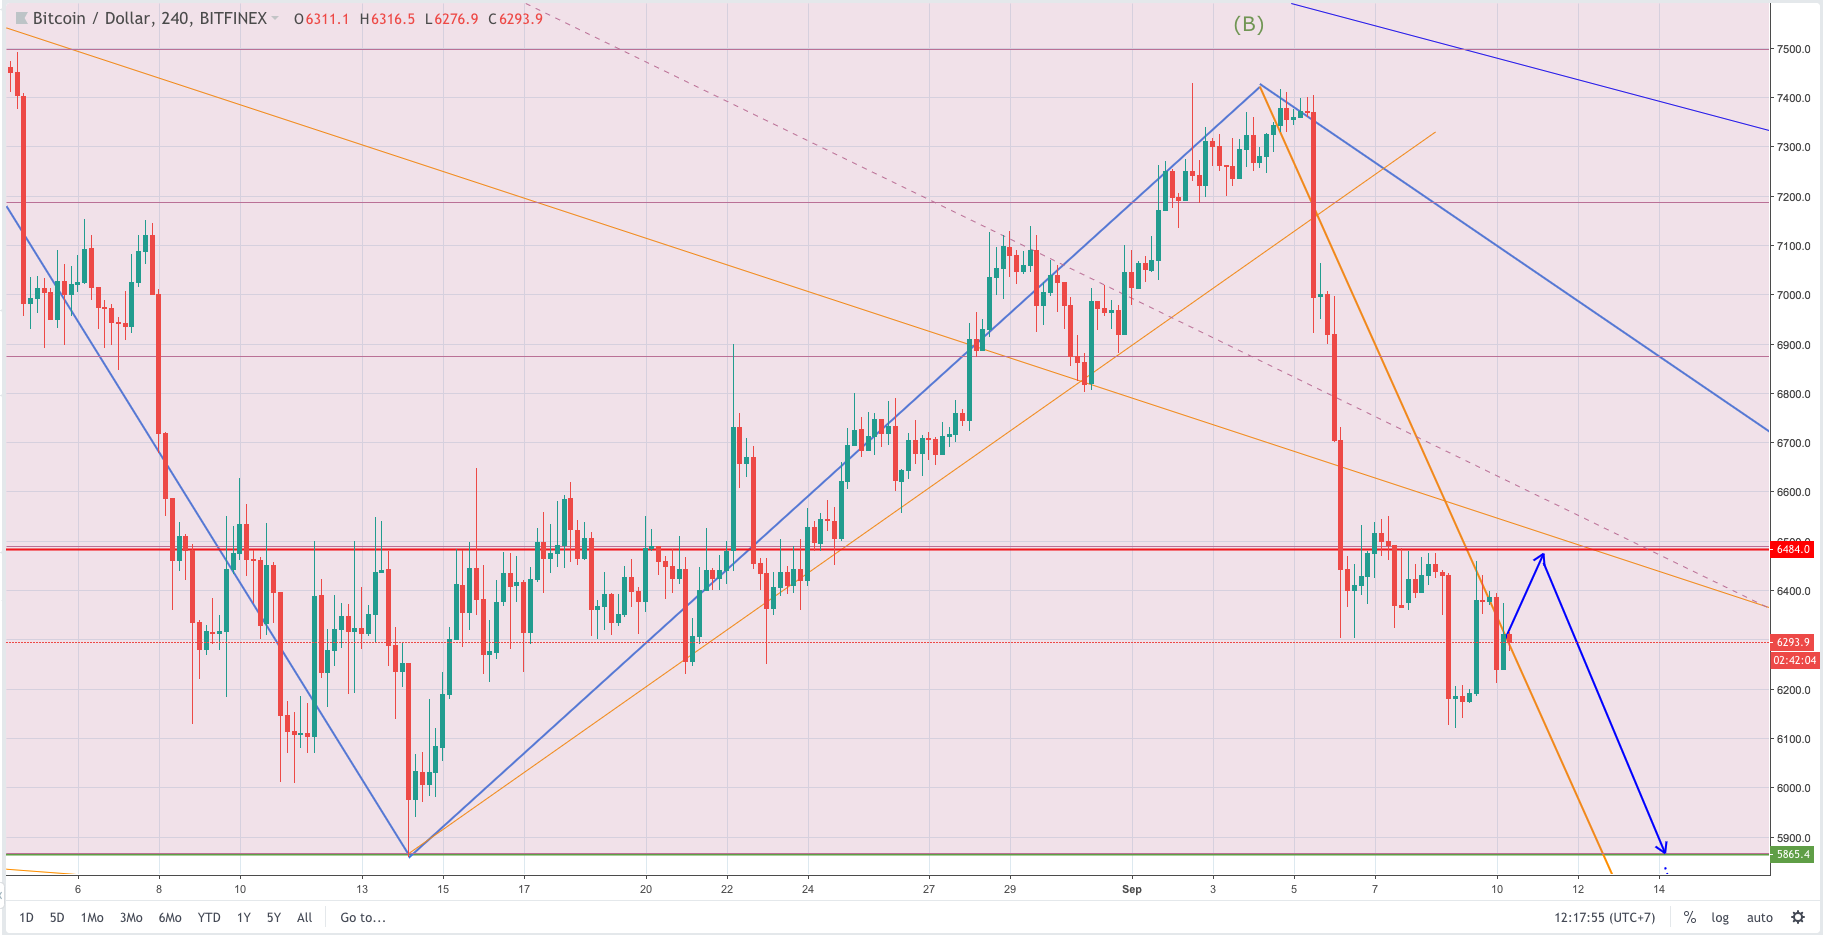 bitcoin analysis and forecast, bitcoin analysis, bitcoin forecast, bitcoin, btcusd, btc